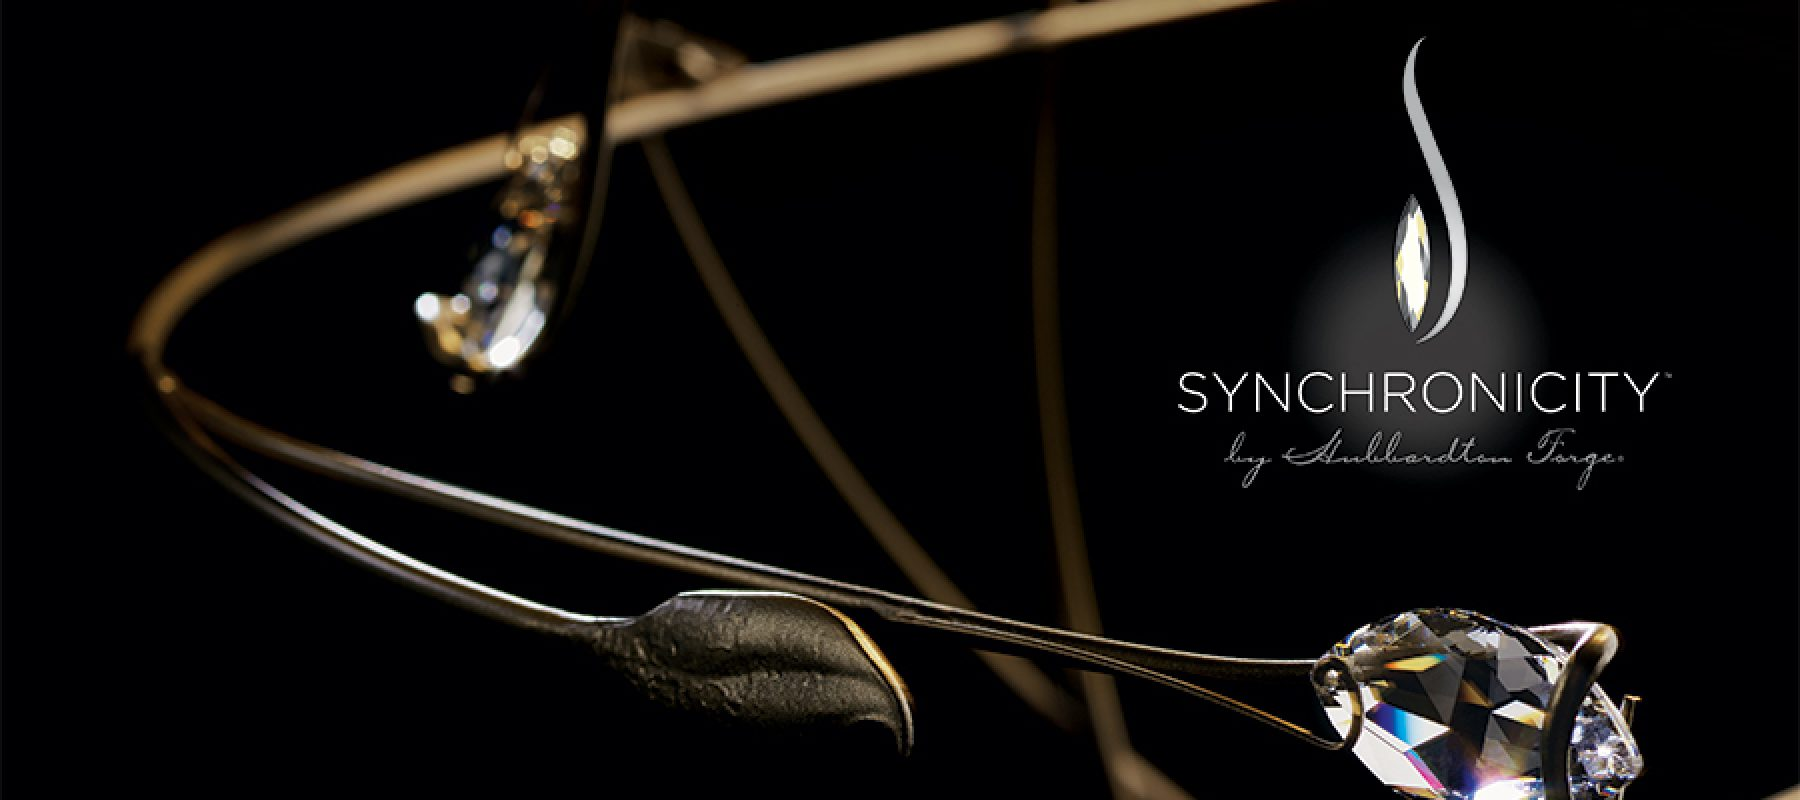 Synchronicity by Hubbardton Forge